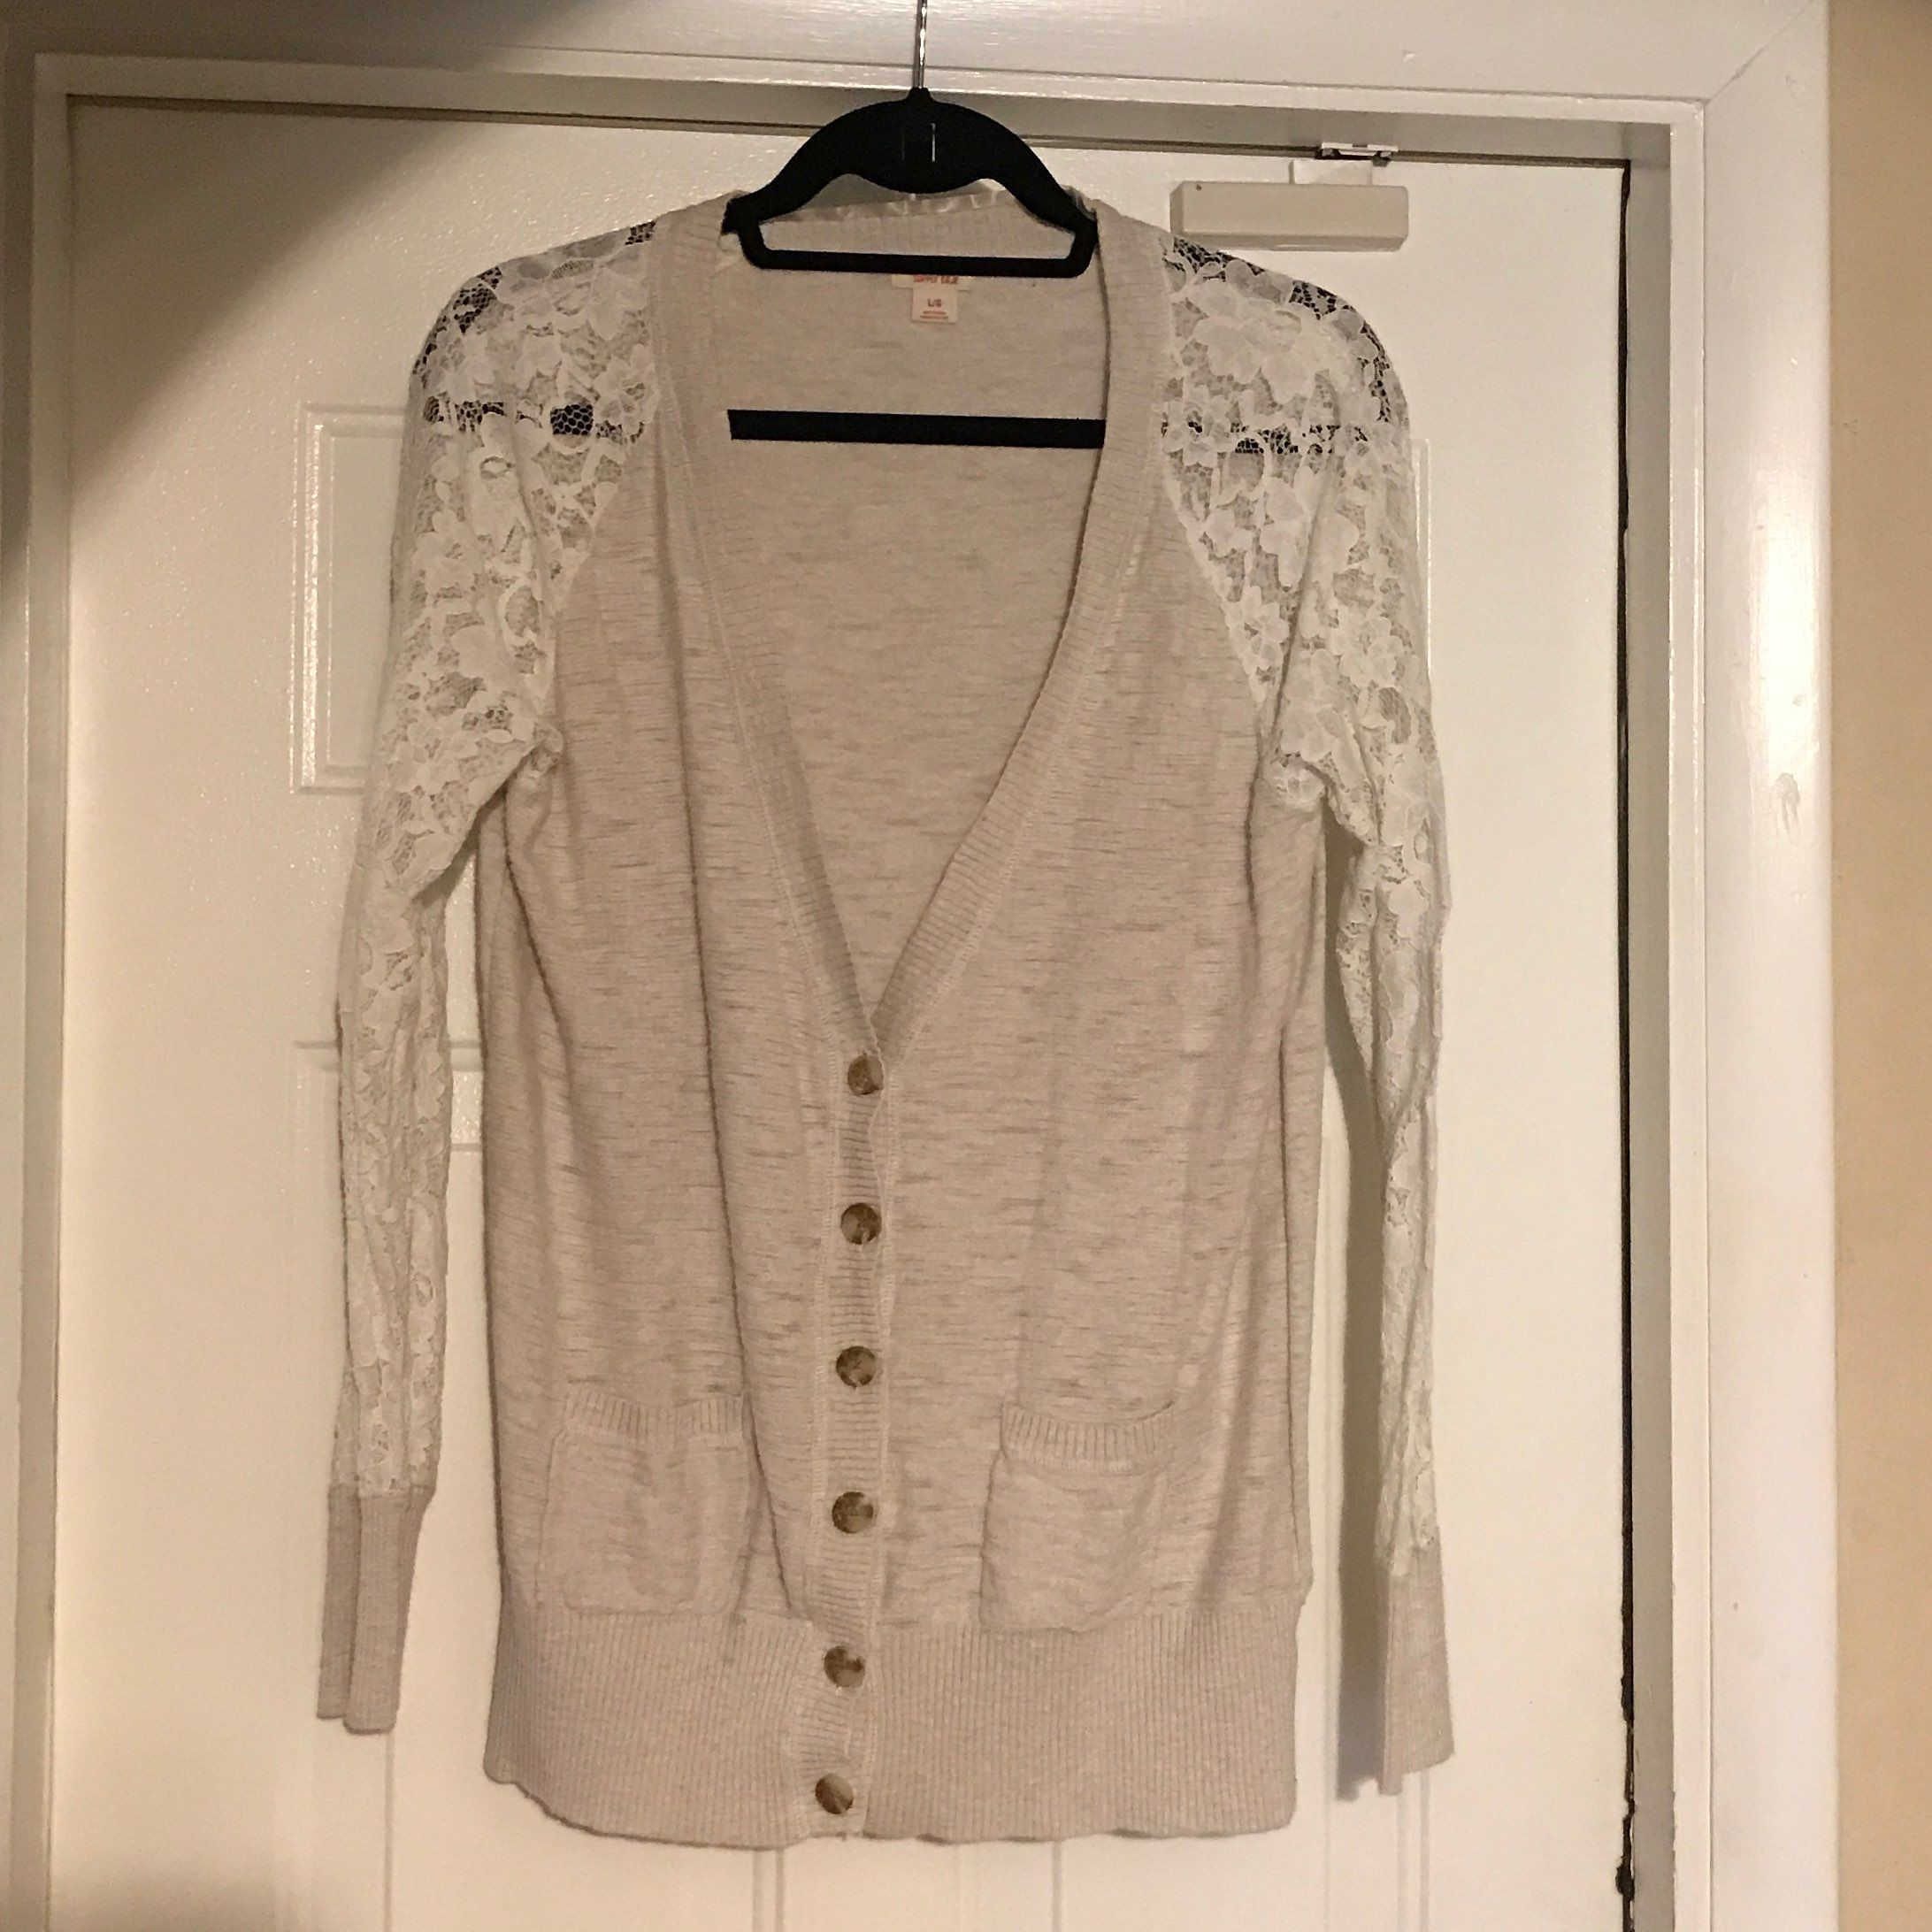 Mossimo Tan/Beige Lace Cardigan Size L - Mercari: BUY & SELL ...